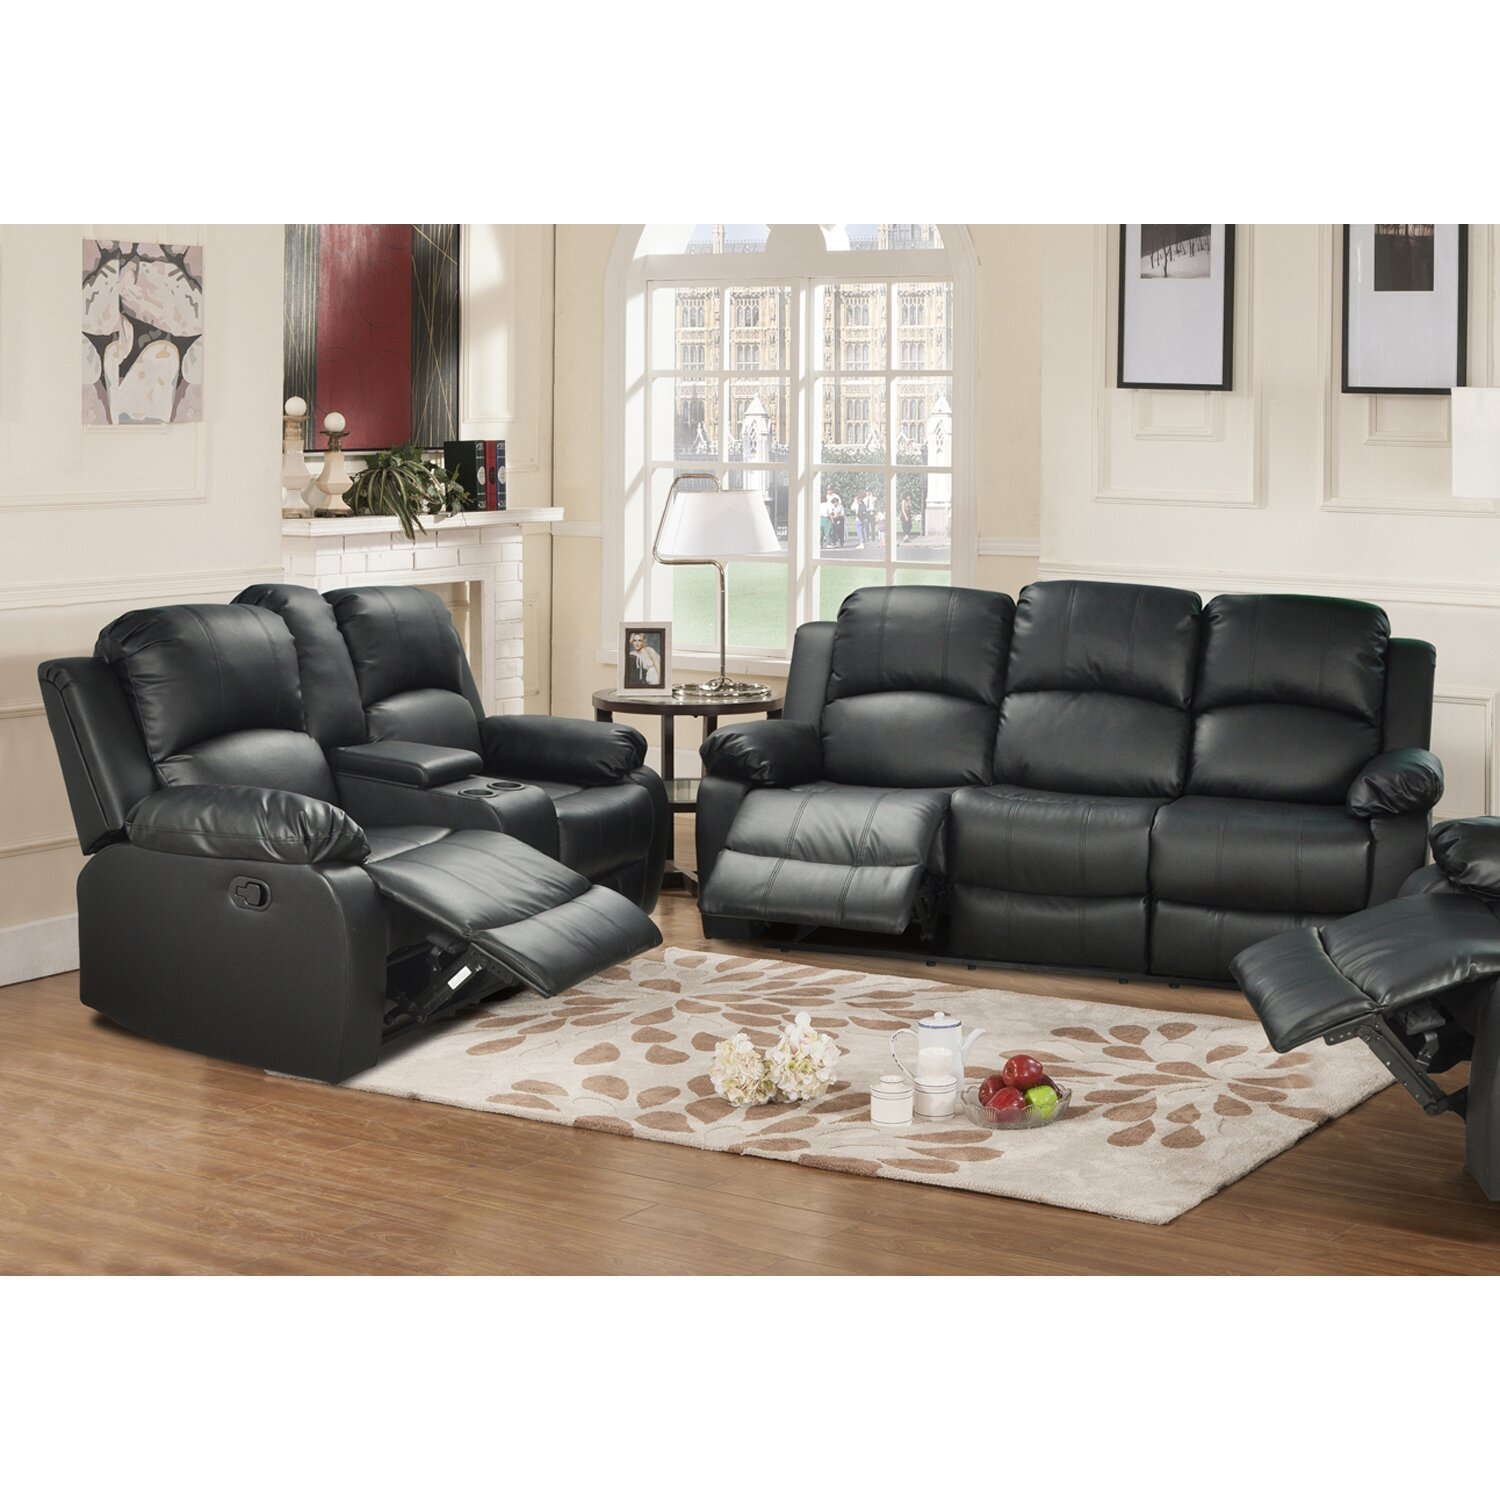 Beverly Fine Furniture Amado 2 Piece Leather Reclining Living Room Set Reviews Wayfair